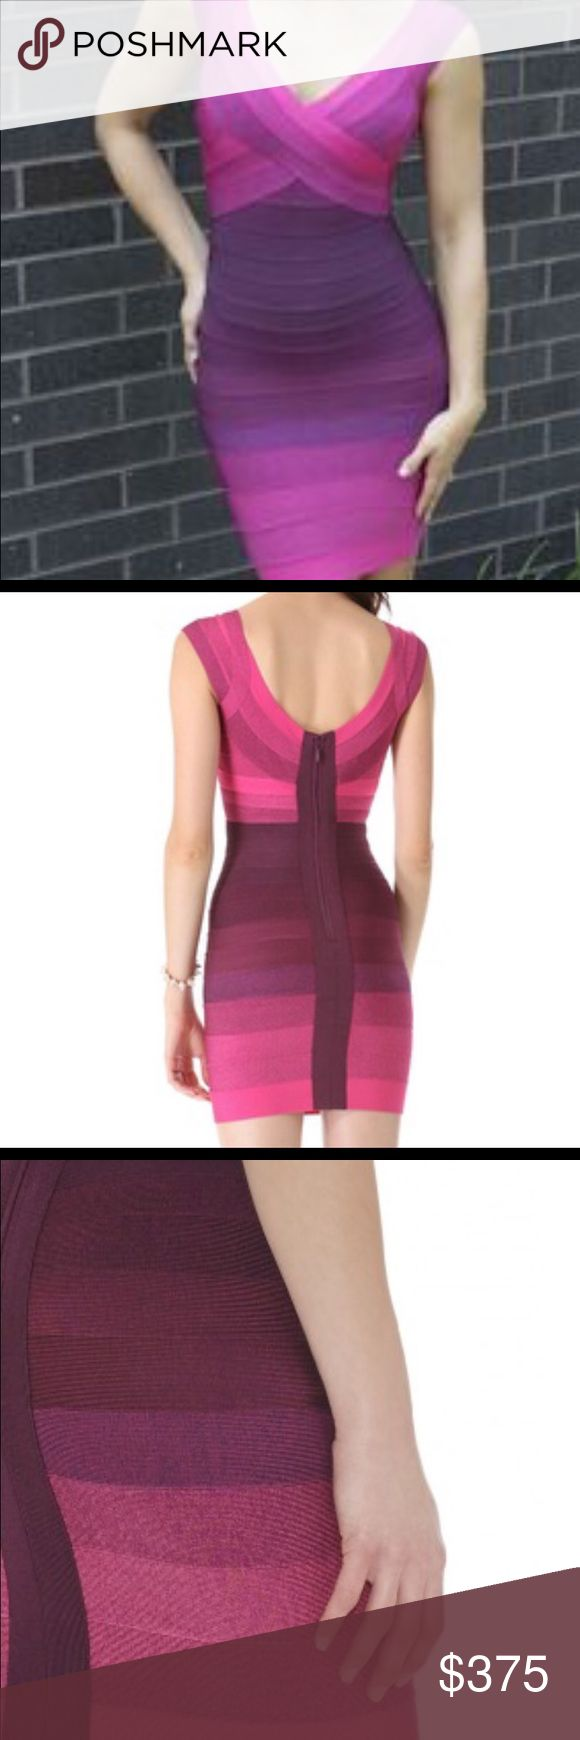 """Herve Leger """"Nannette"""" ombre purple bandage dress. Like new with tags. Originally $1,450.00 retail. Worn once. Gorgeous color of purple >orchid>fuchsia. Glamorously hot dress. Herve Leger Dresses Mini"""